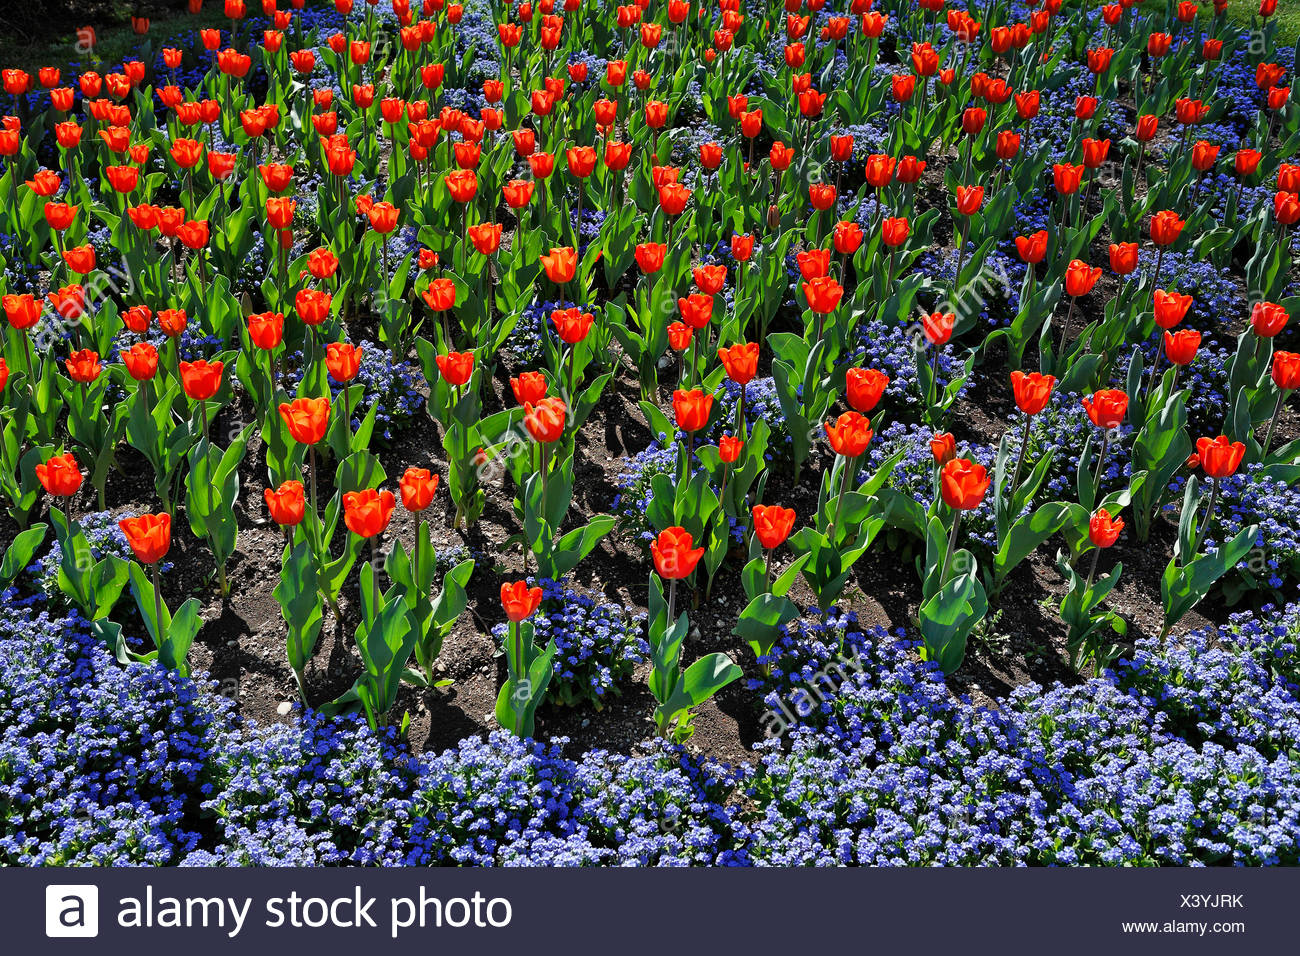 Tulip flowerbed, Austria, Europe Stock Photo